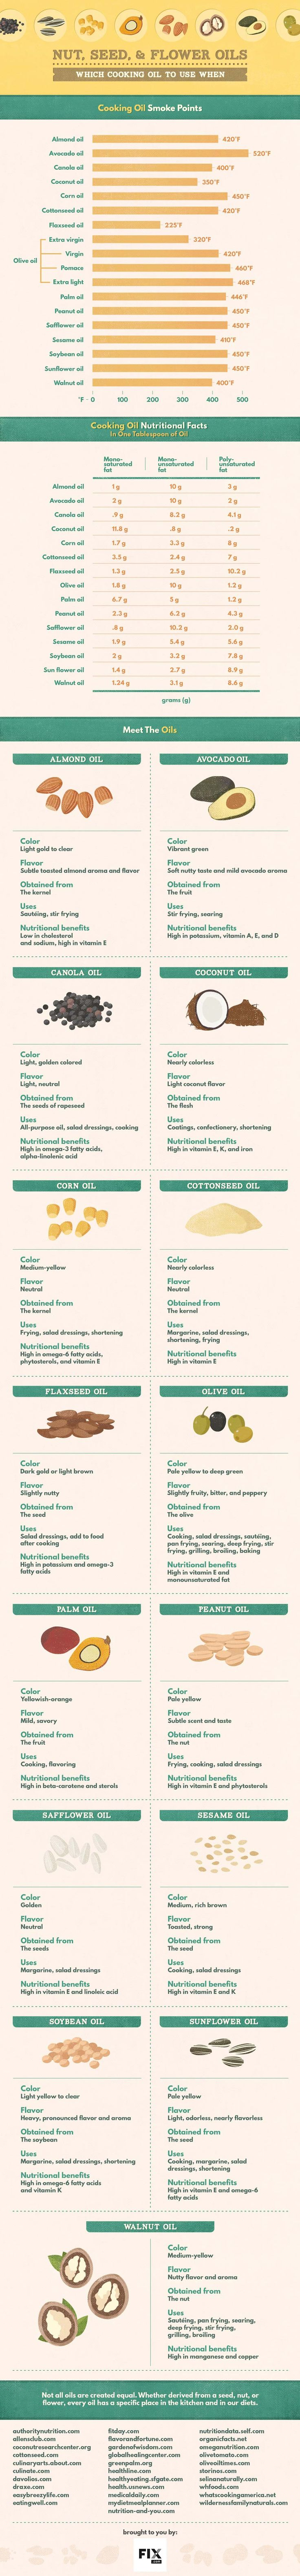 Learn about the properties of your favorite nut, seed, and flower oils with Fix.com's complete guide to cooking oils. #food #cooking [Grapeseed oil wasn't listed on this???]